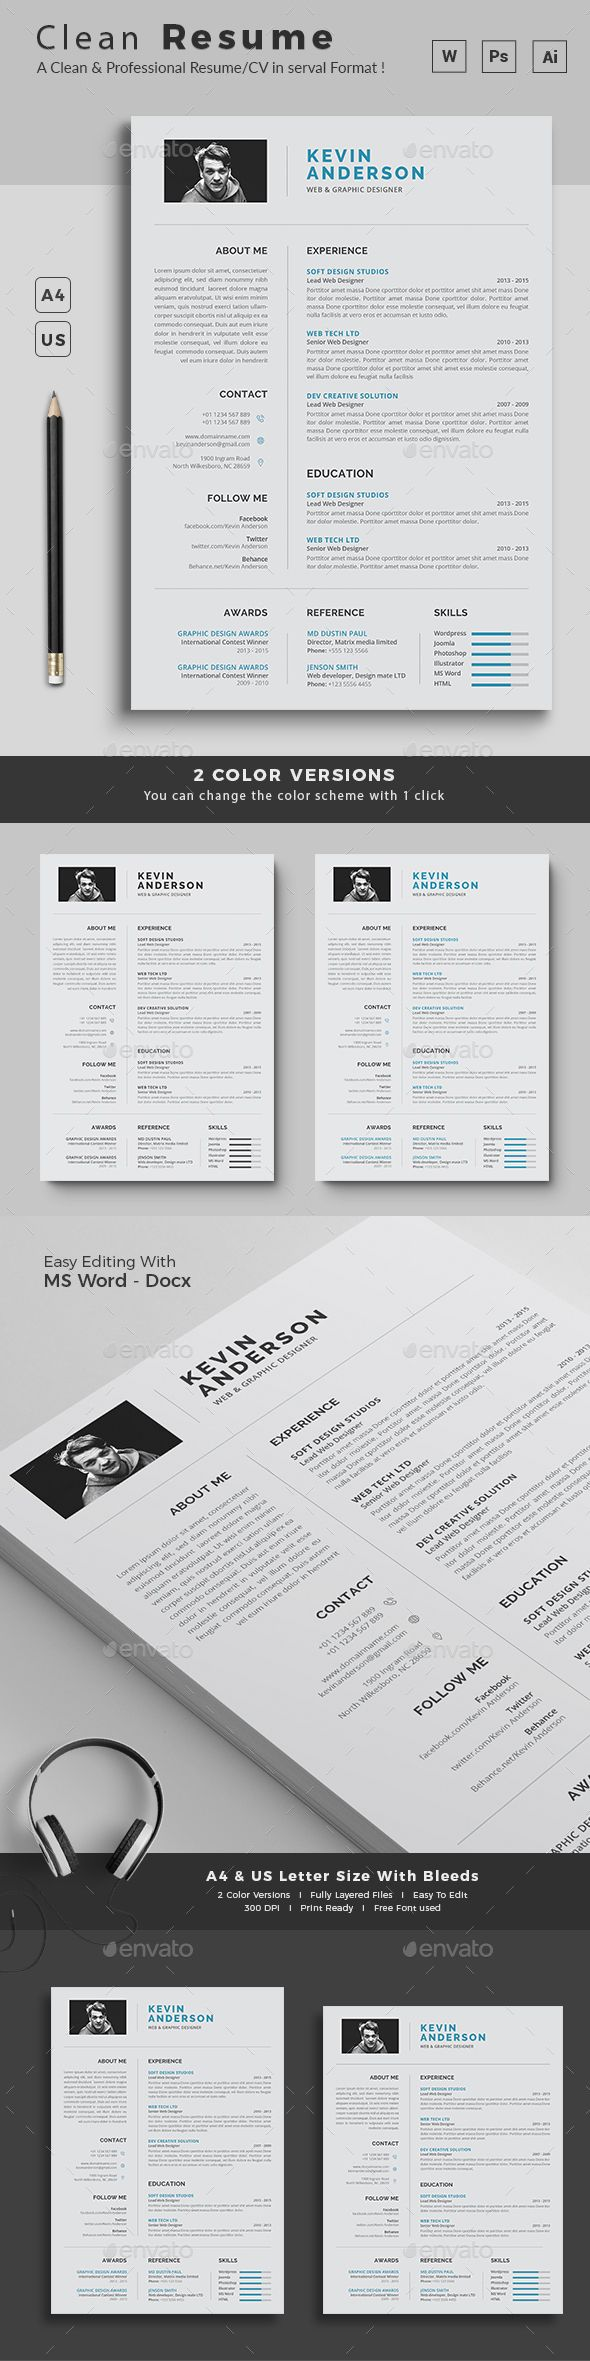 Simple Resume Exampleprin 130 Best Cv And Work Images On Pinterest  Curriculum Resume Ideas .